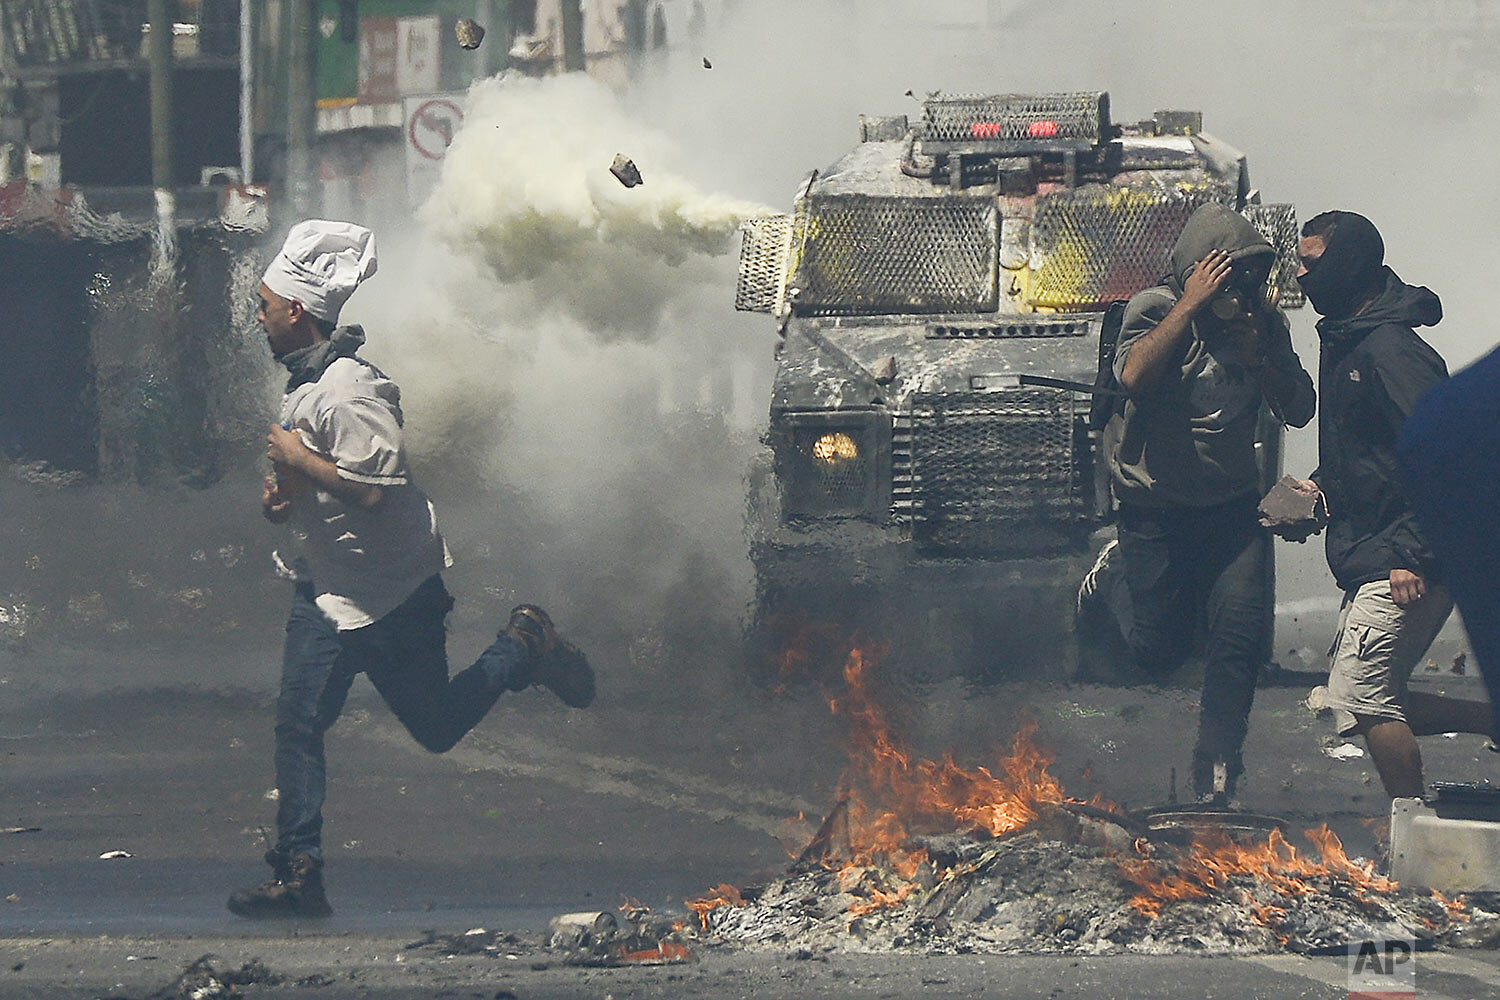 A man wearing a chef's hat runs for cover as anti-government protesters clash with police in Valparaiso, Chile, Thursday, Oct. 24, 2019. (AP Photo/Matias Delacroix)